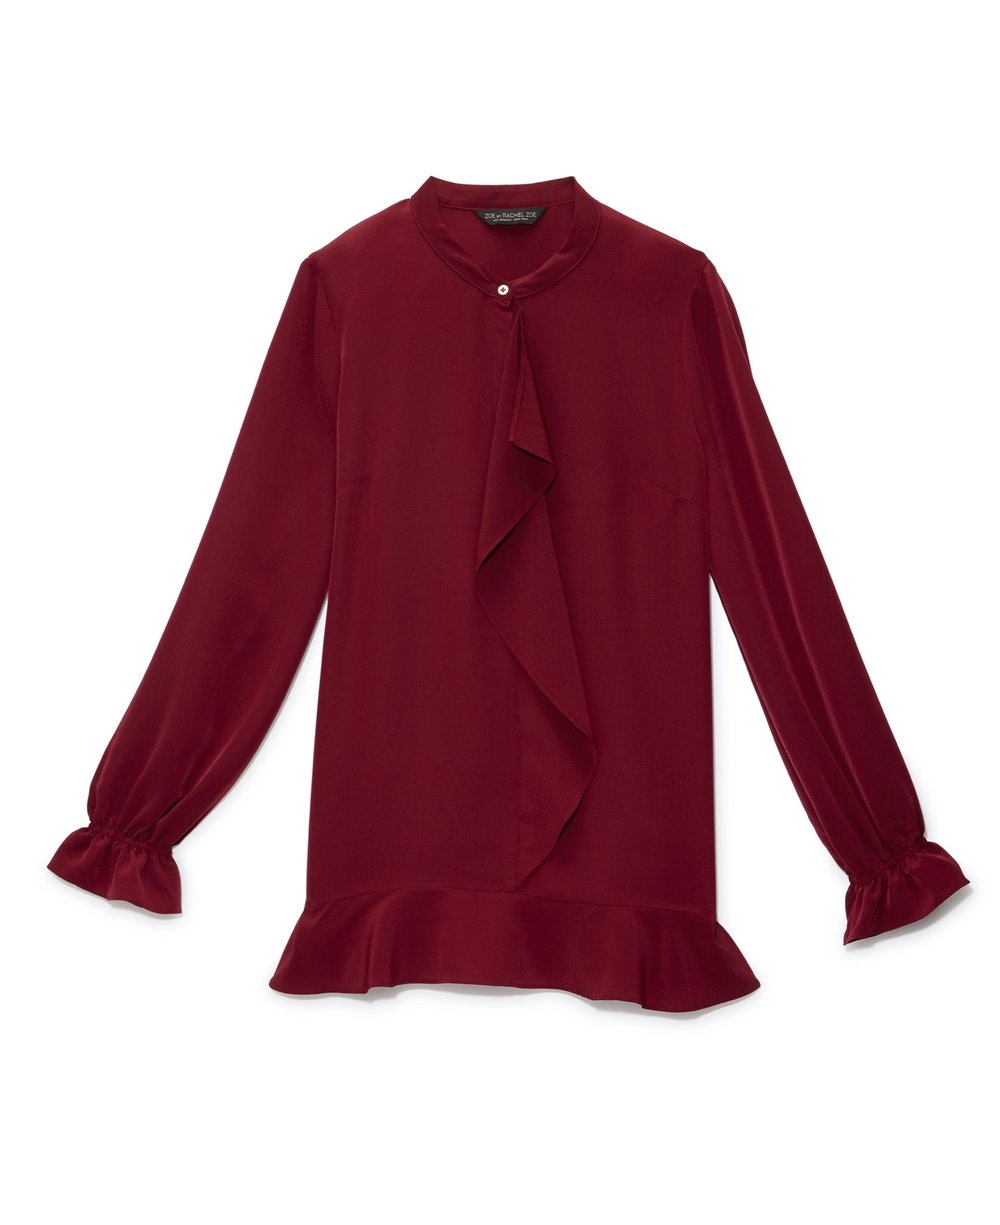 ZOEBYRACHELZOE_CREATED FOR MACYS_RUBY TOP_$109.jpg